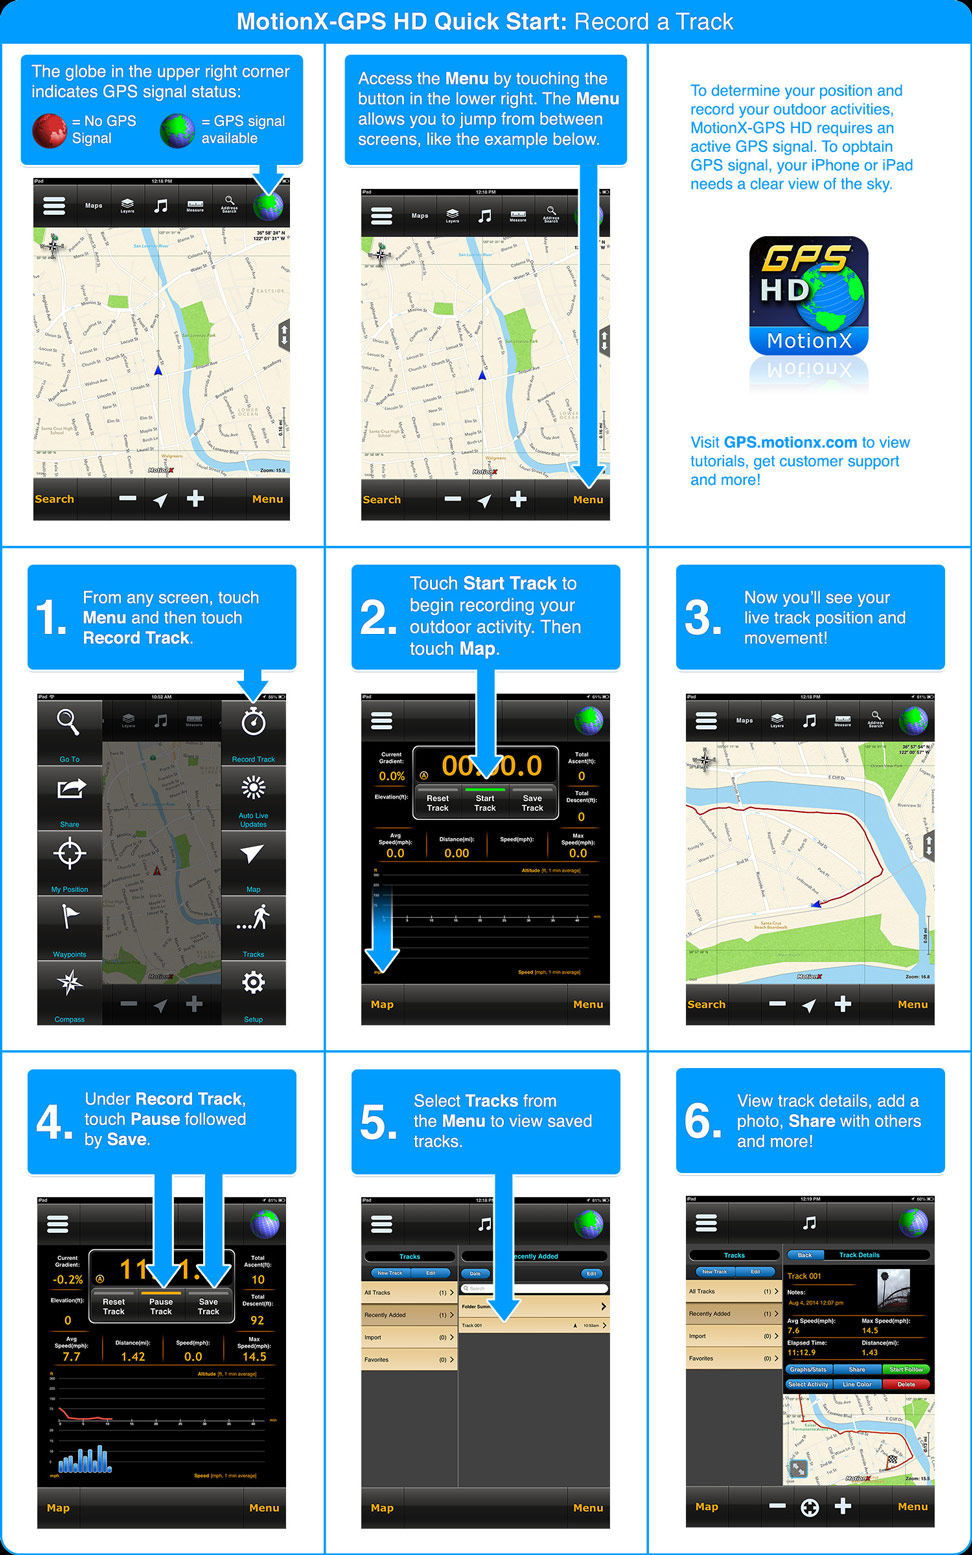 MotionX-GPS HD Quickstart Guide (for iPad)